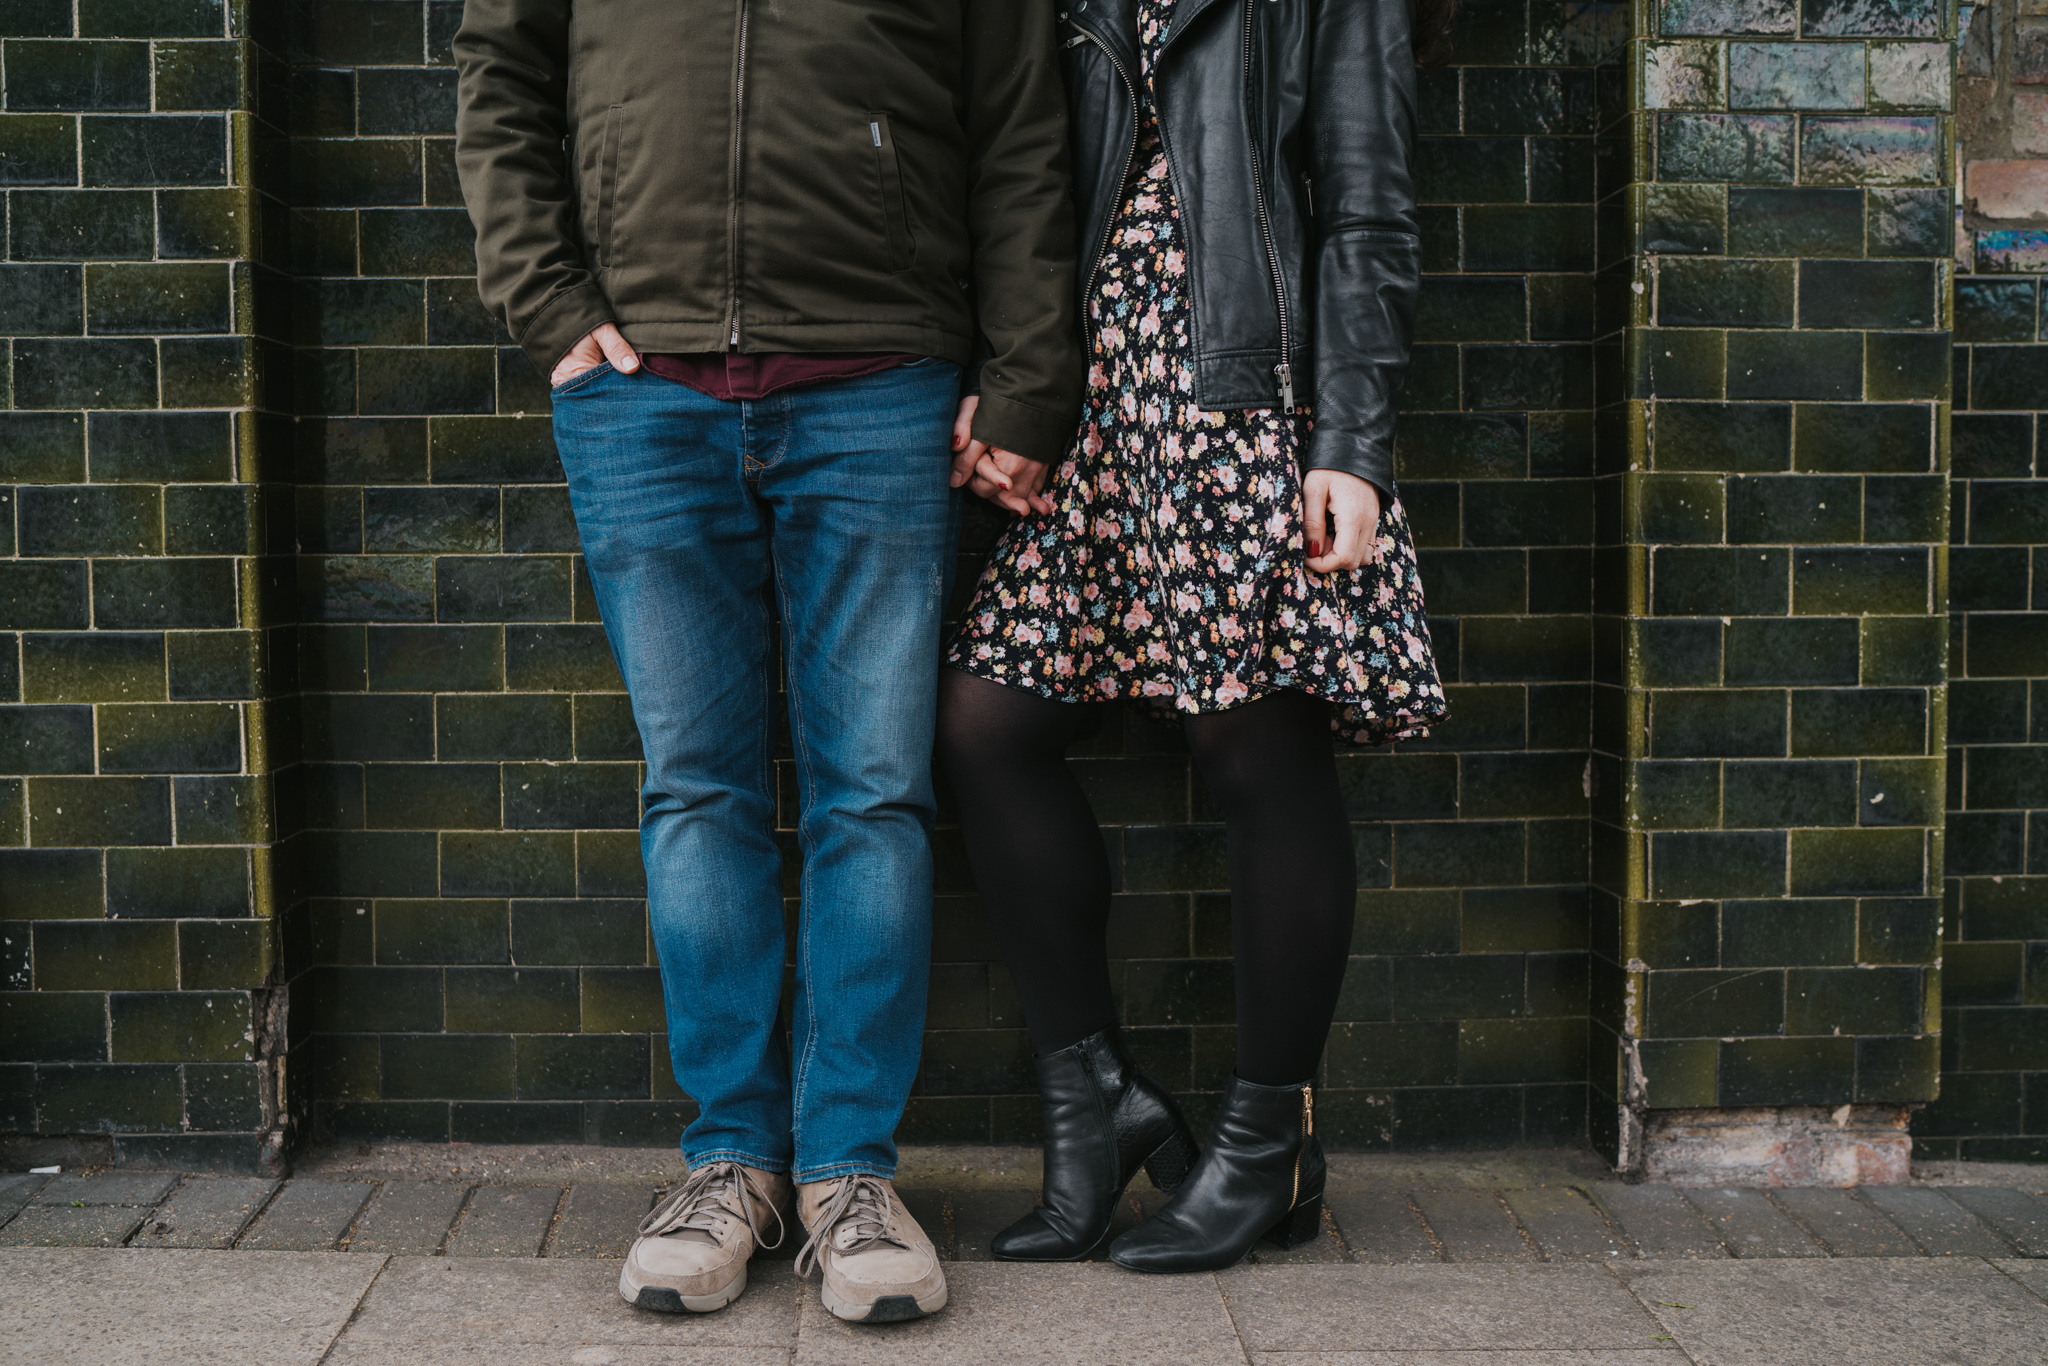 natalie-john-urban-london-engagement-grace-elizabeth-colchester-essex-alternative-wedding-photographer-essex-suffolk-norfolk-devon (47 of 66).jpg